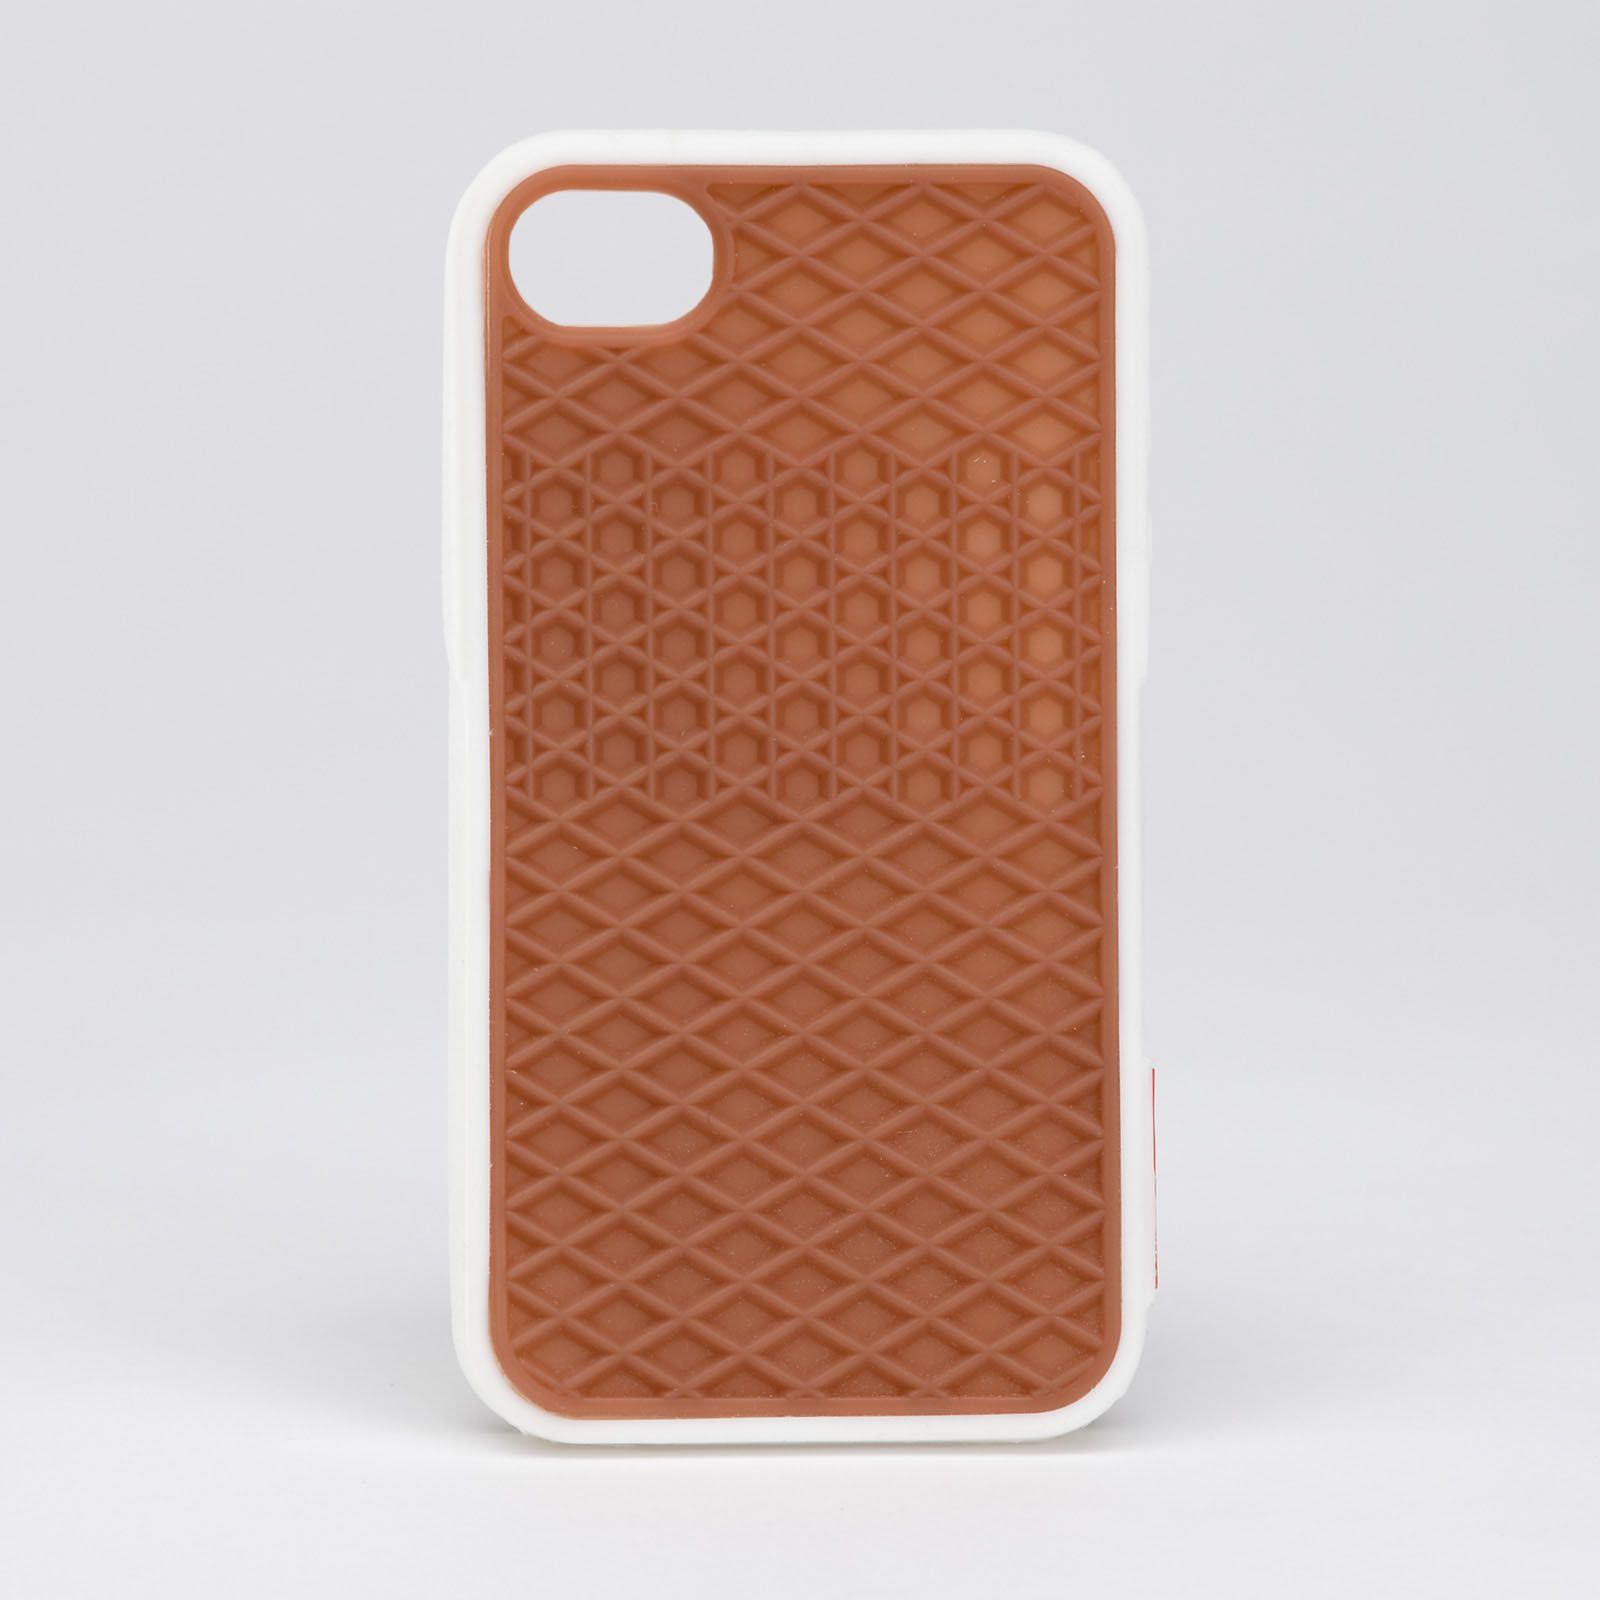 f31627a08e6d2c Completely anti-iphone case but this is cool - Vans Phone Case for iPhone 4G